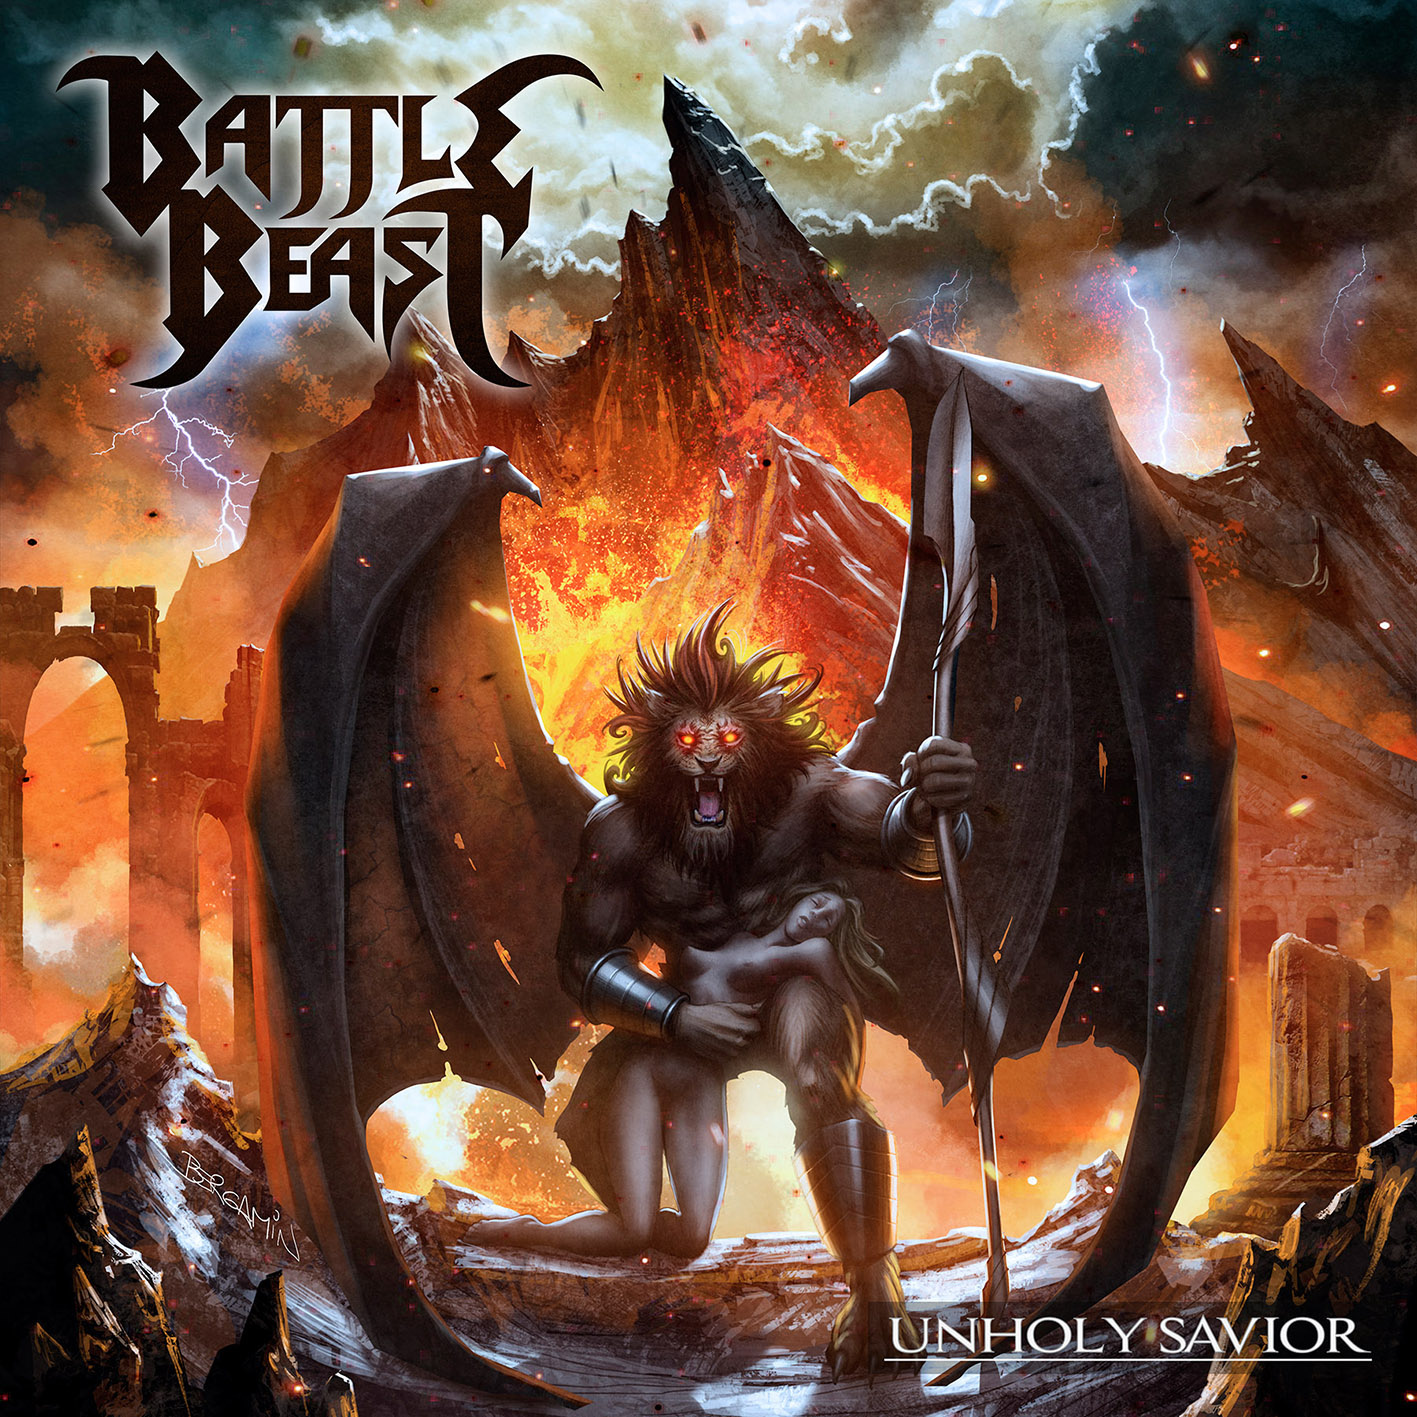 Battle Beast – Unholy Savior Review